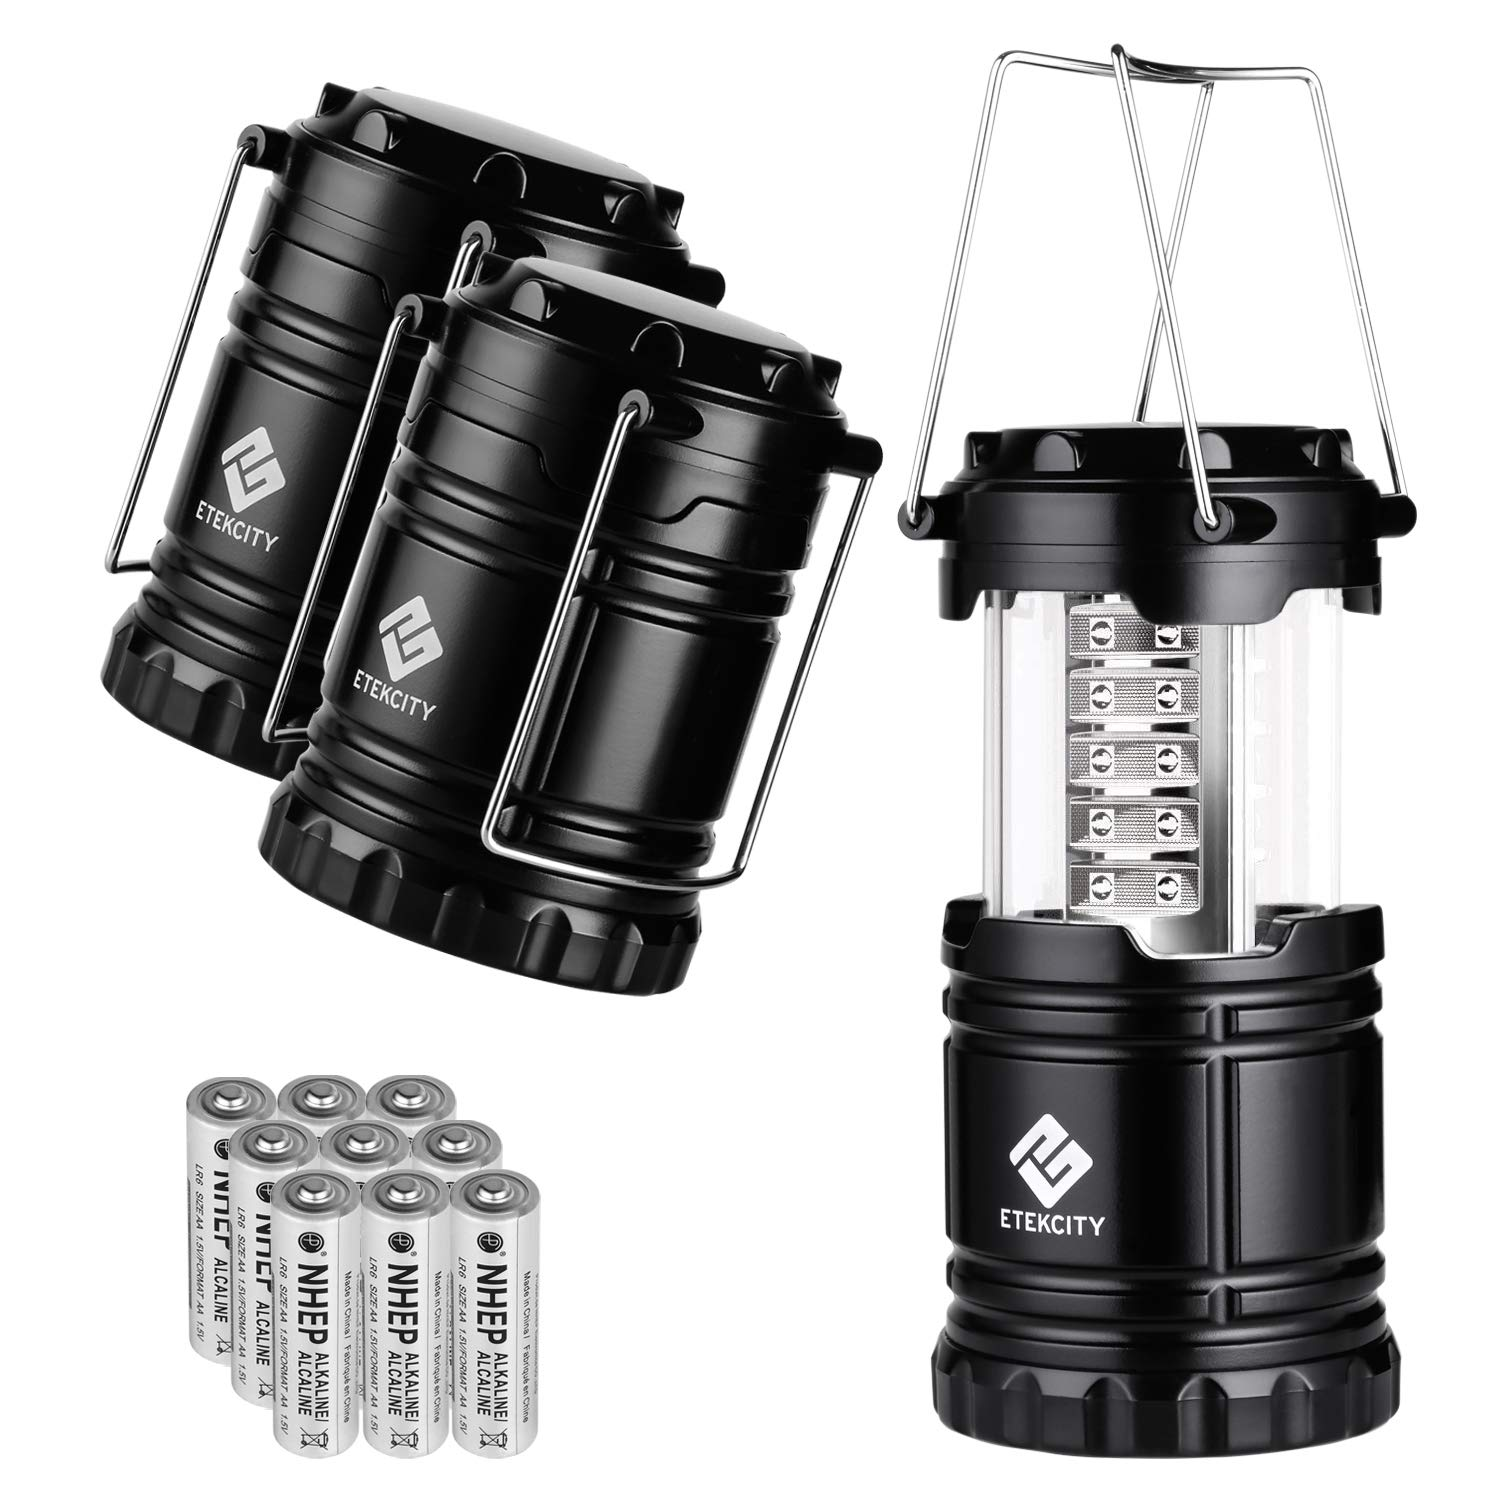 Etekcity Portable LED Camping Lantern and Flashlight with AA Batteries, Survival Light for Camping, Hiking, Reading, Hurricane, Power Outage (Black, Collapsible)